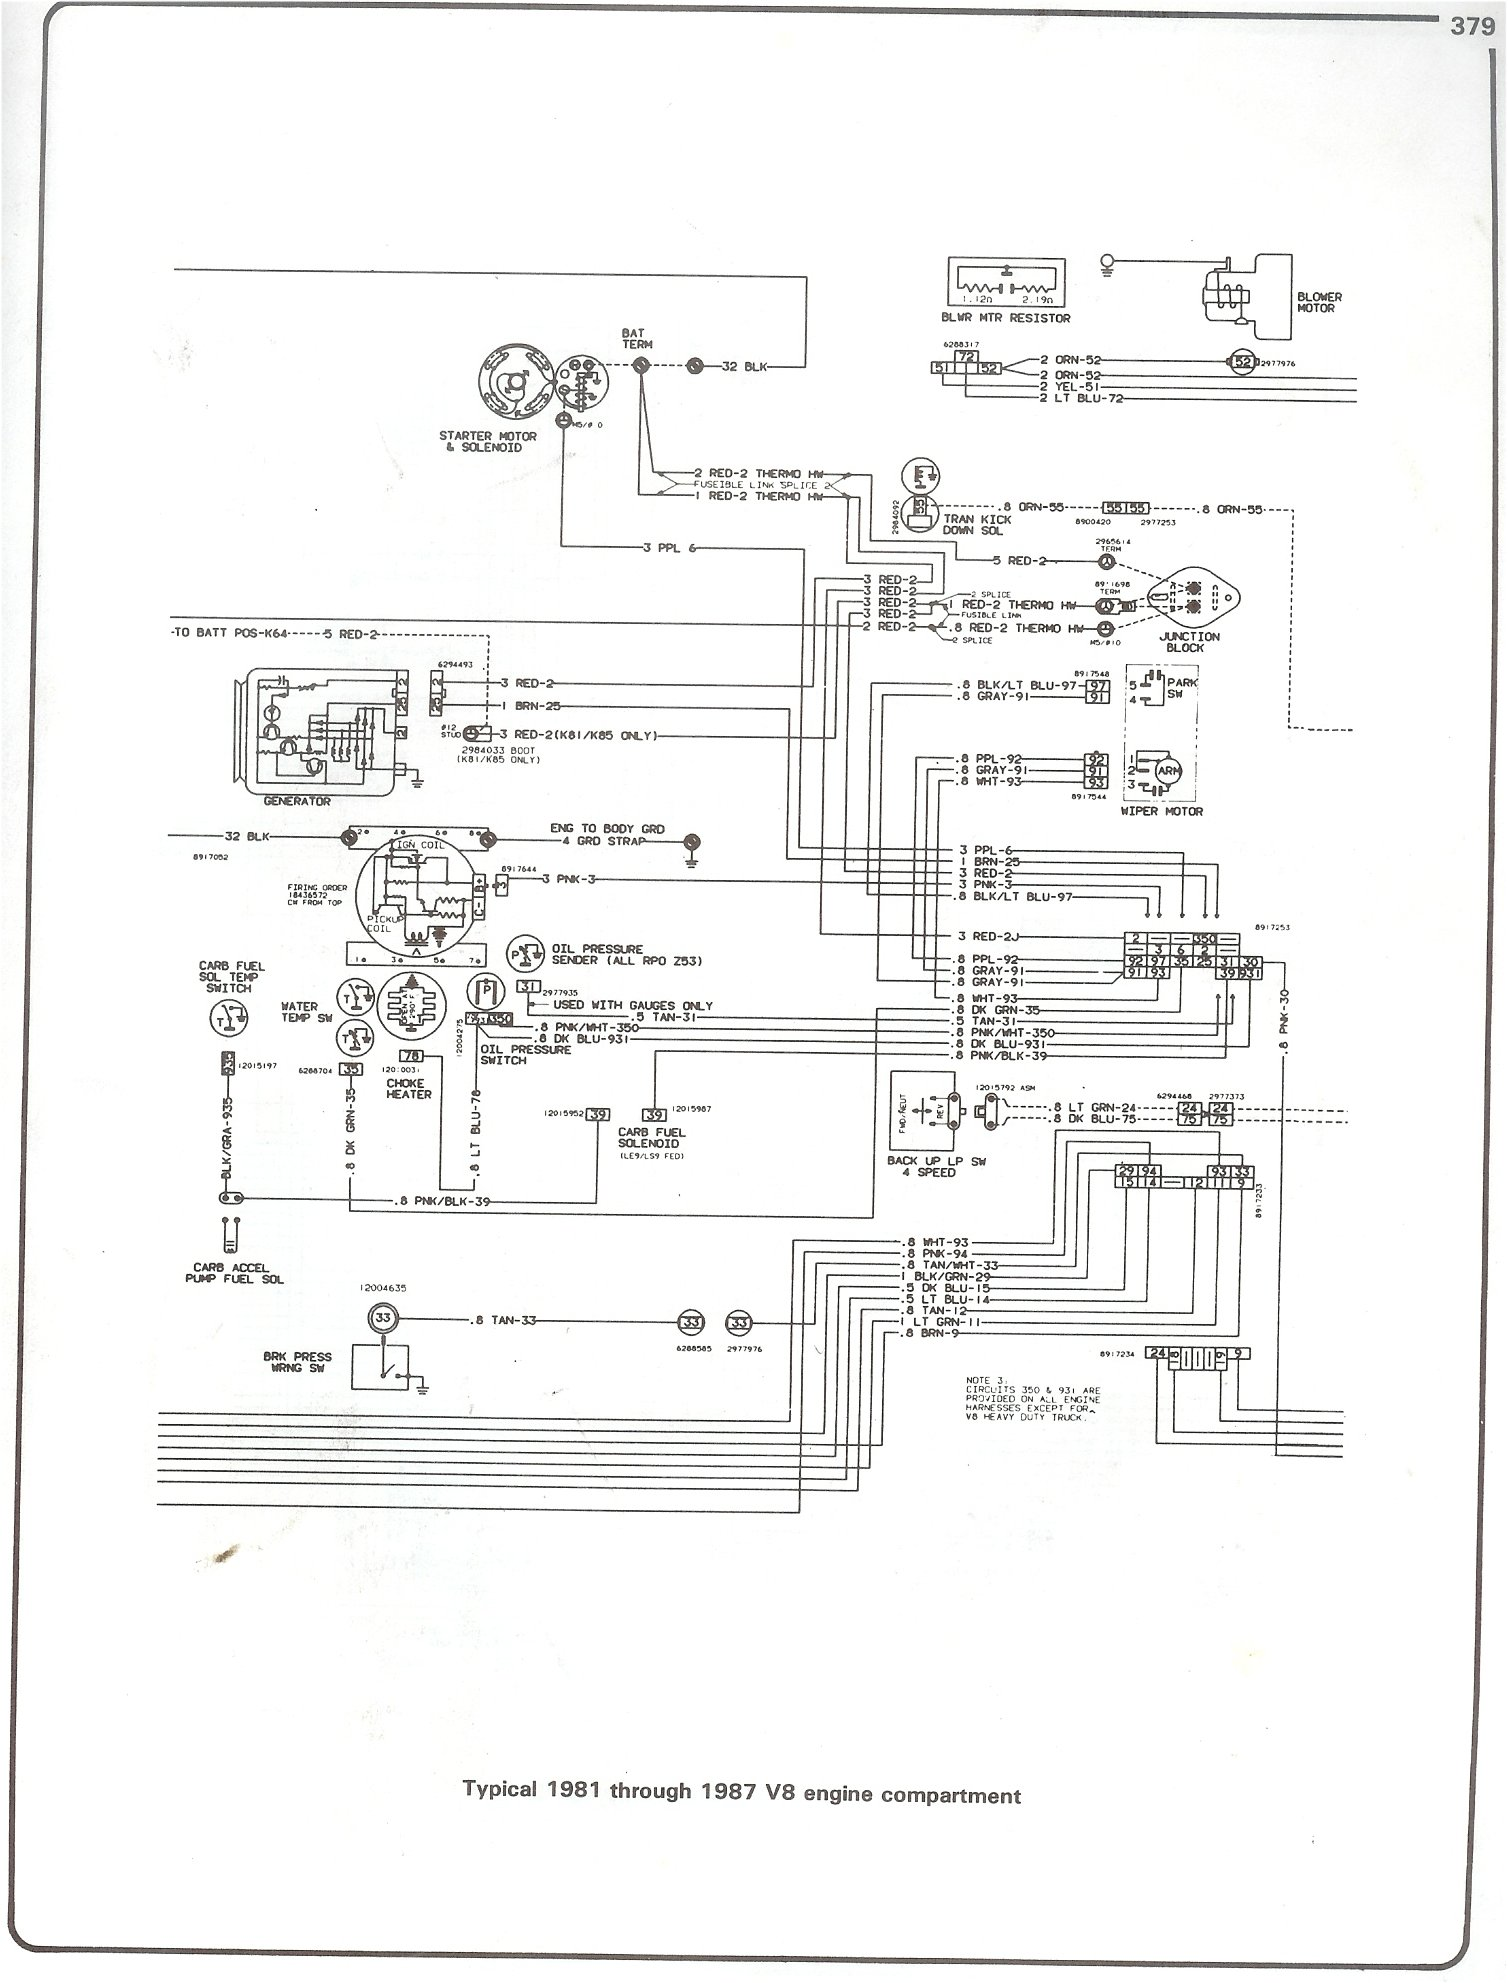 81 87_V8_engine complete 73 87 wiring diagrams chevy wiring schematics at bayanpartner.co